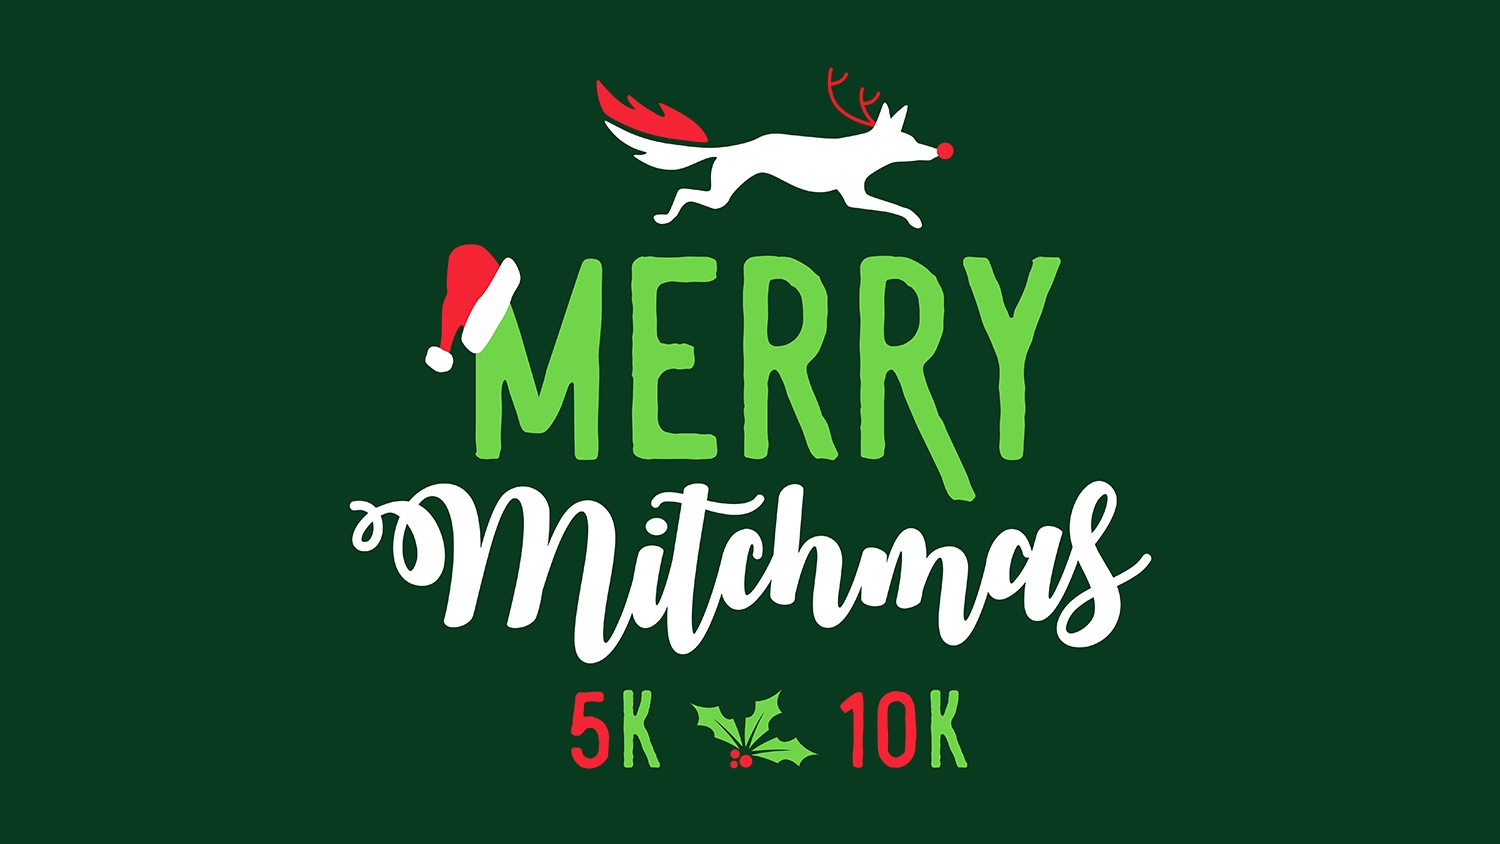 merry mitchmas 5k and